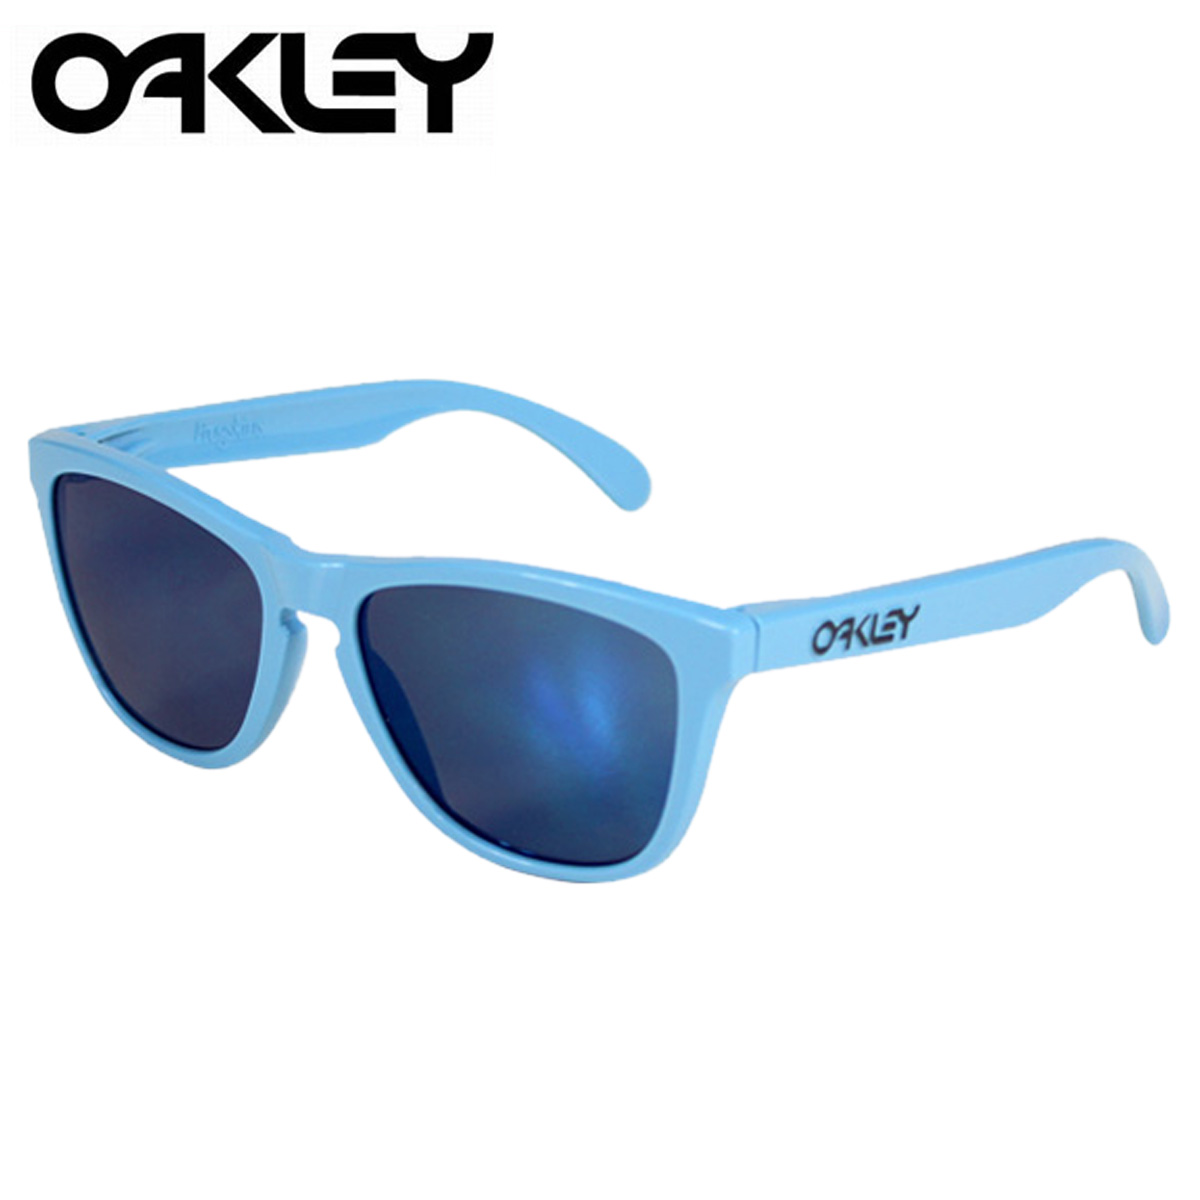 6758c708e4 ... closeout whats up sports rakuten global market sold out oakley oakley  sunglasses frogskins special edition heritage